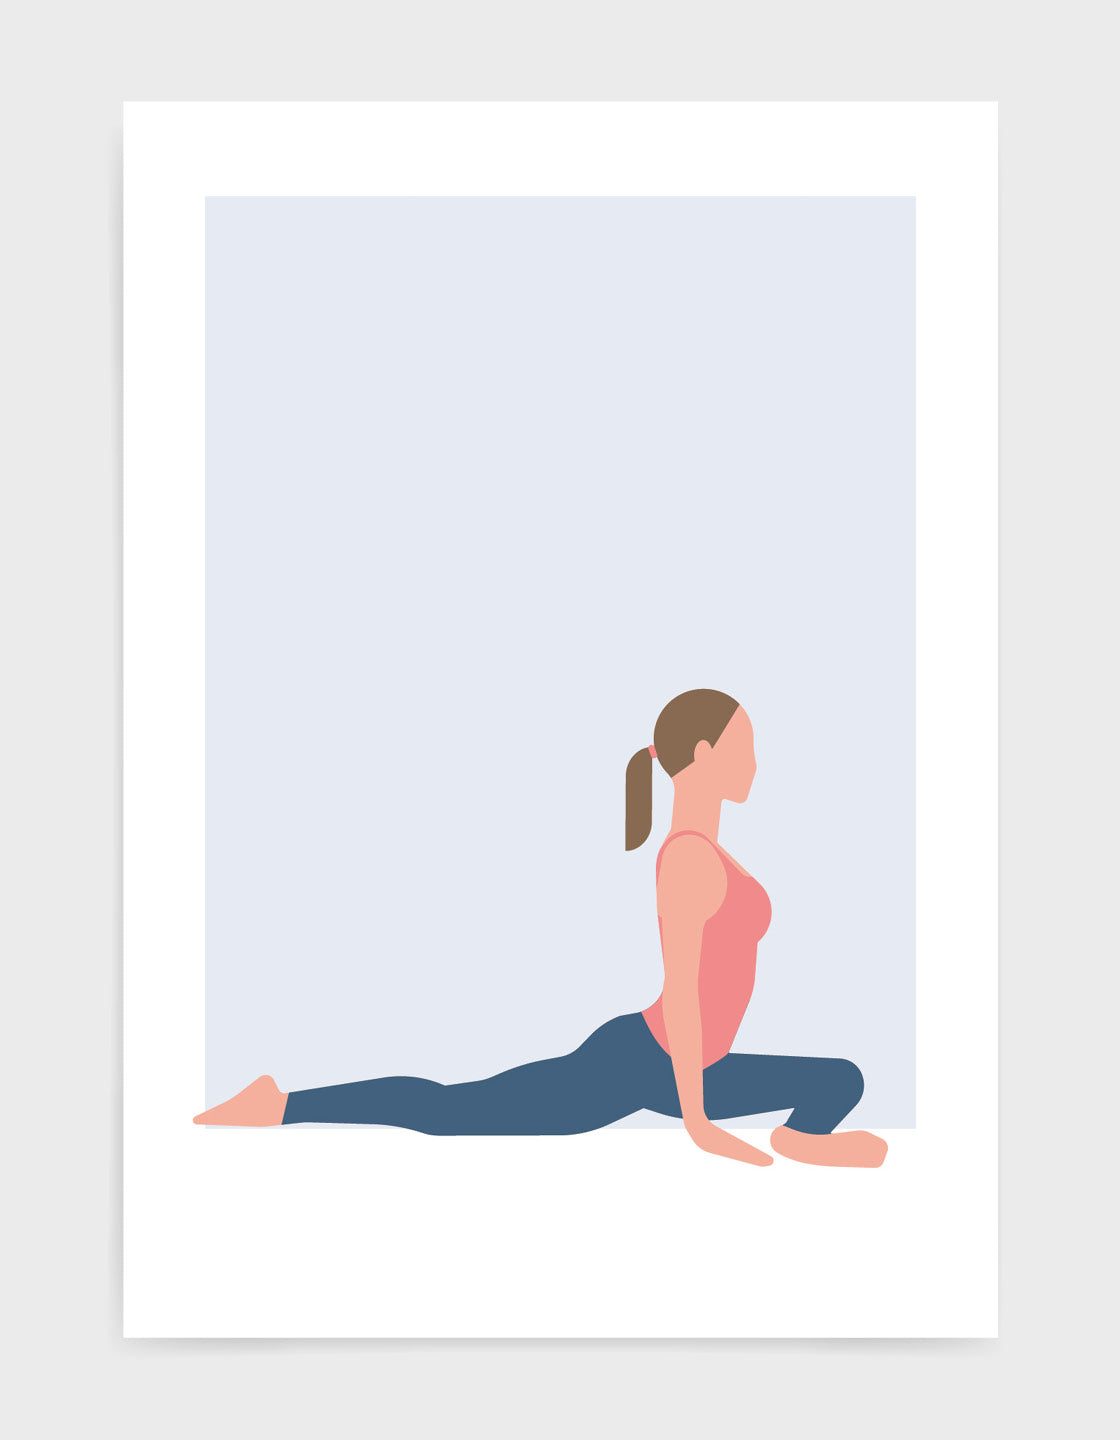 Illustration of a woman in pigeon pose yoga position against a blue background